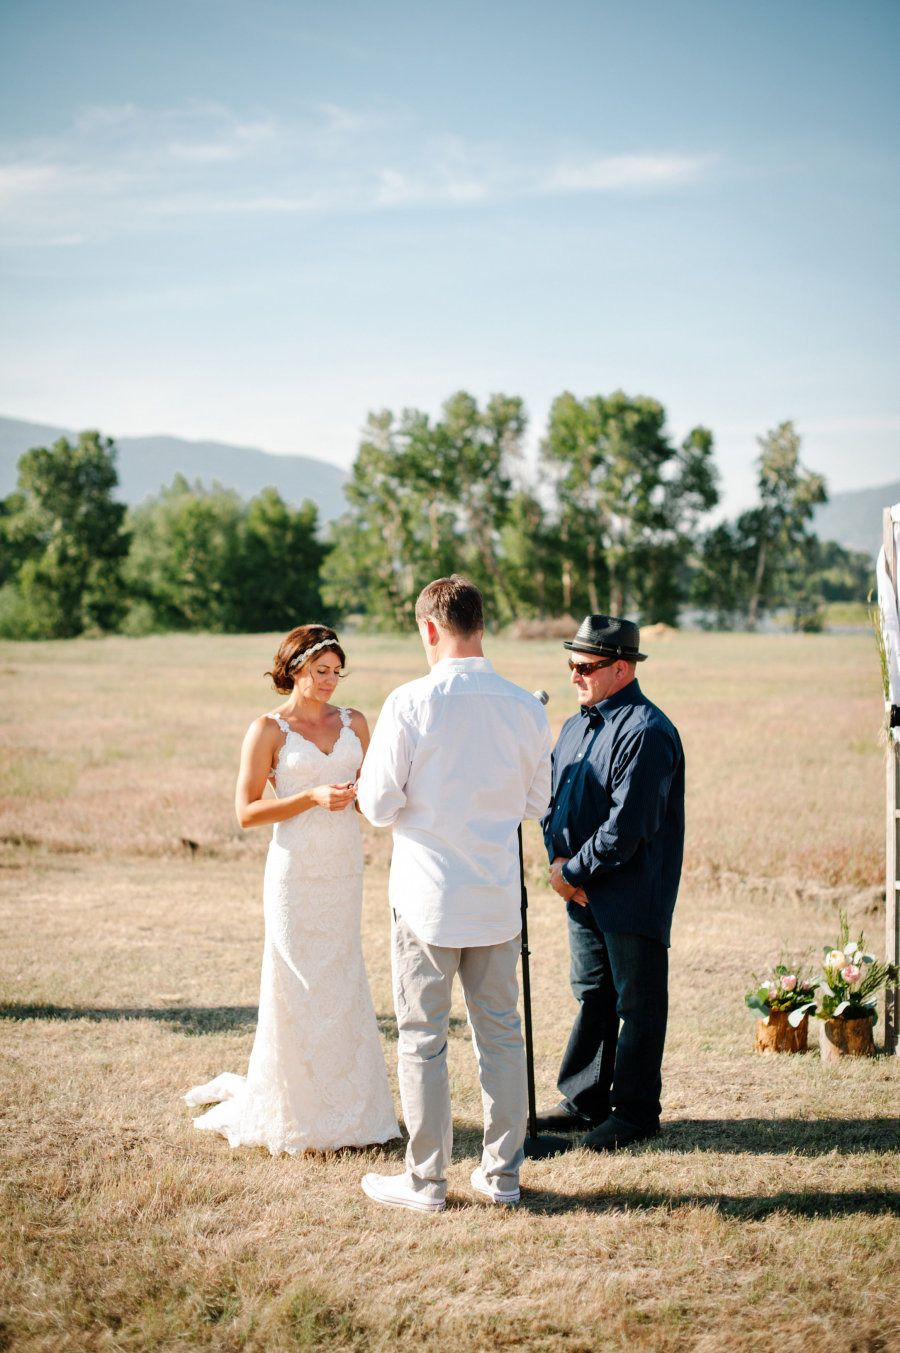 Dave Coulier and Melissa Bring's Montana Wedding | Montana ...